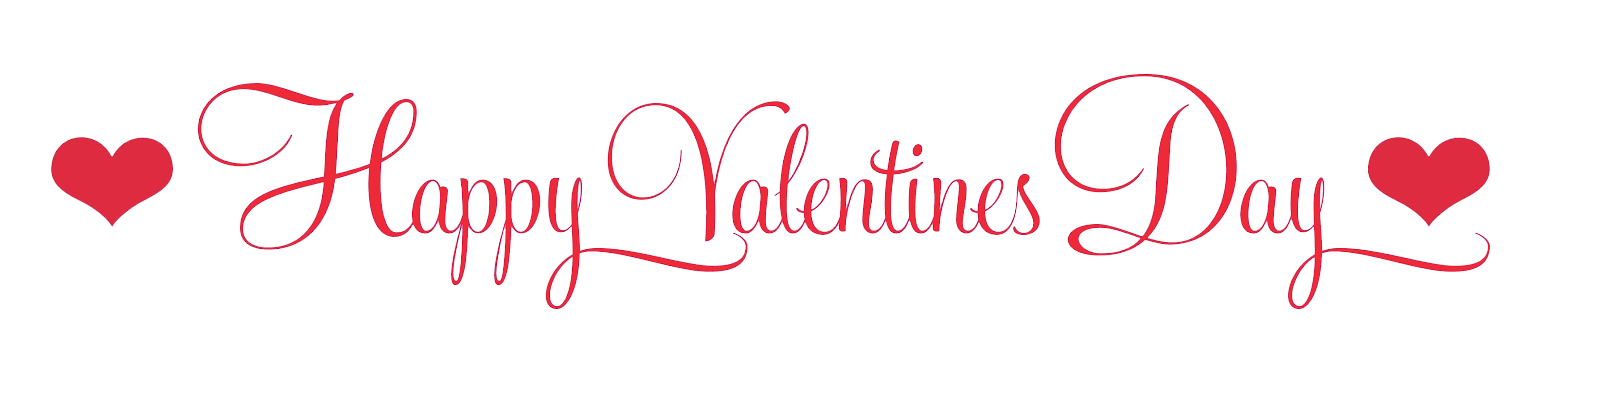 Happy Valentine's Day PNG Transparent Images.